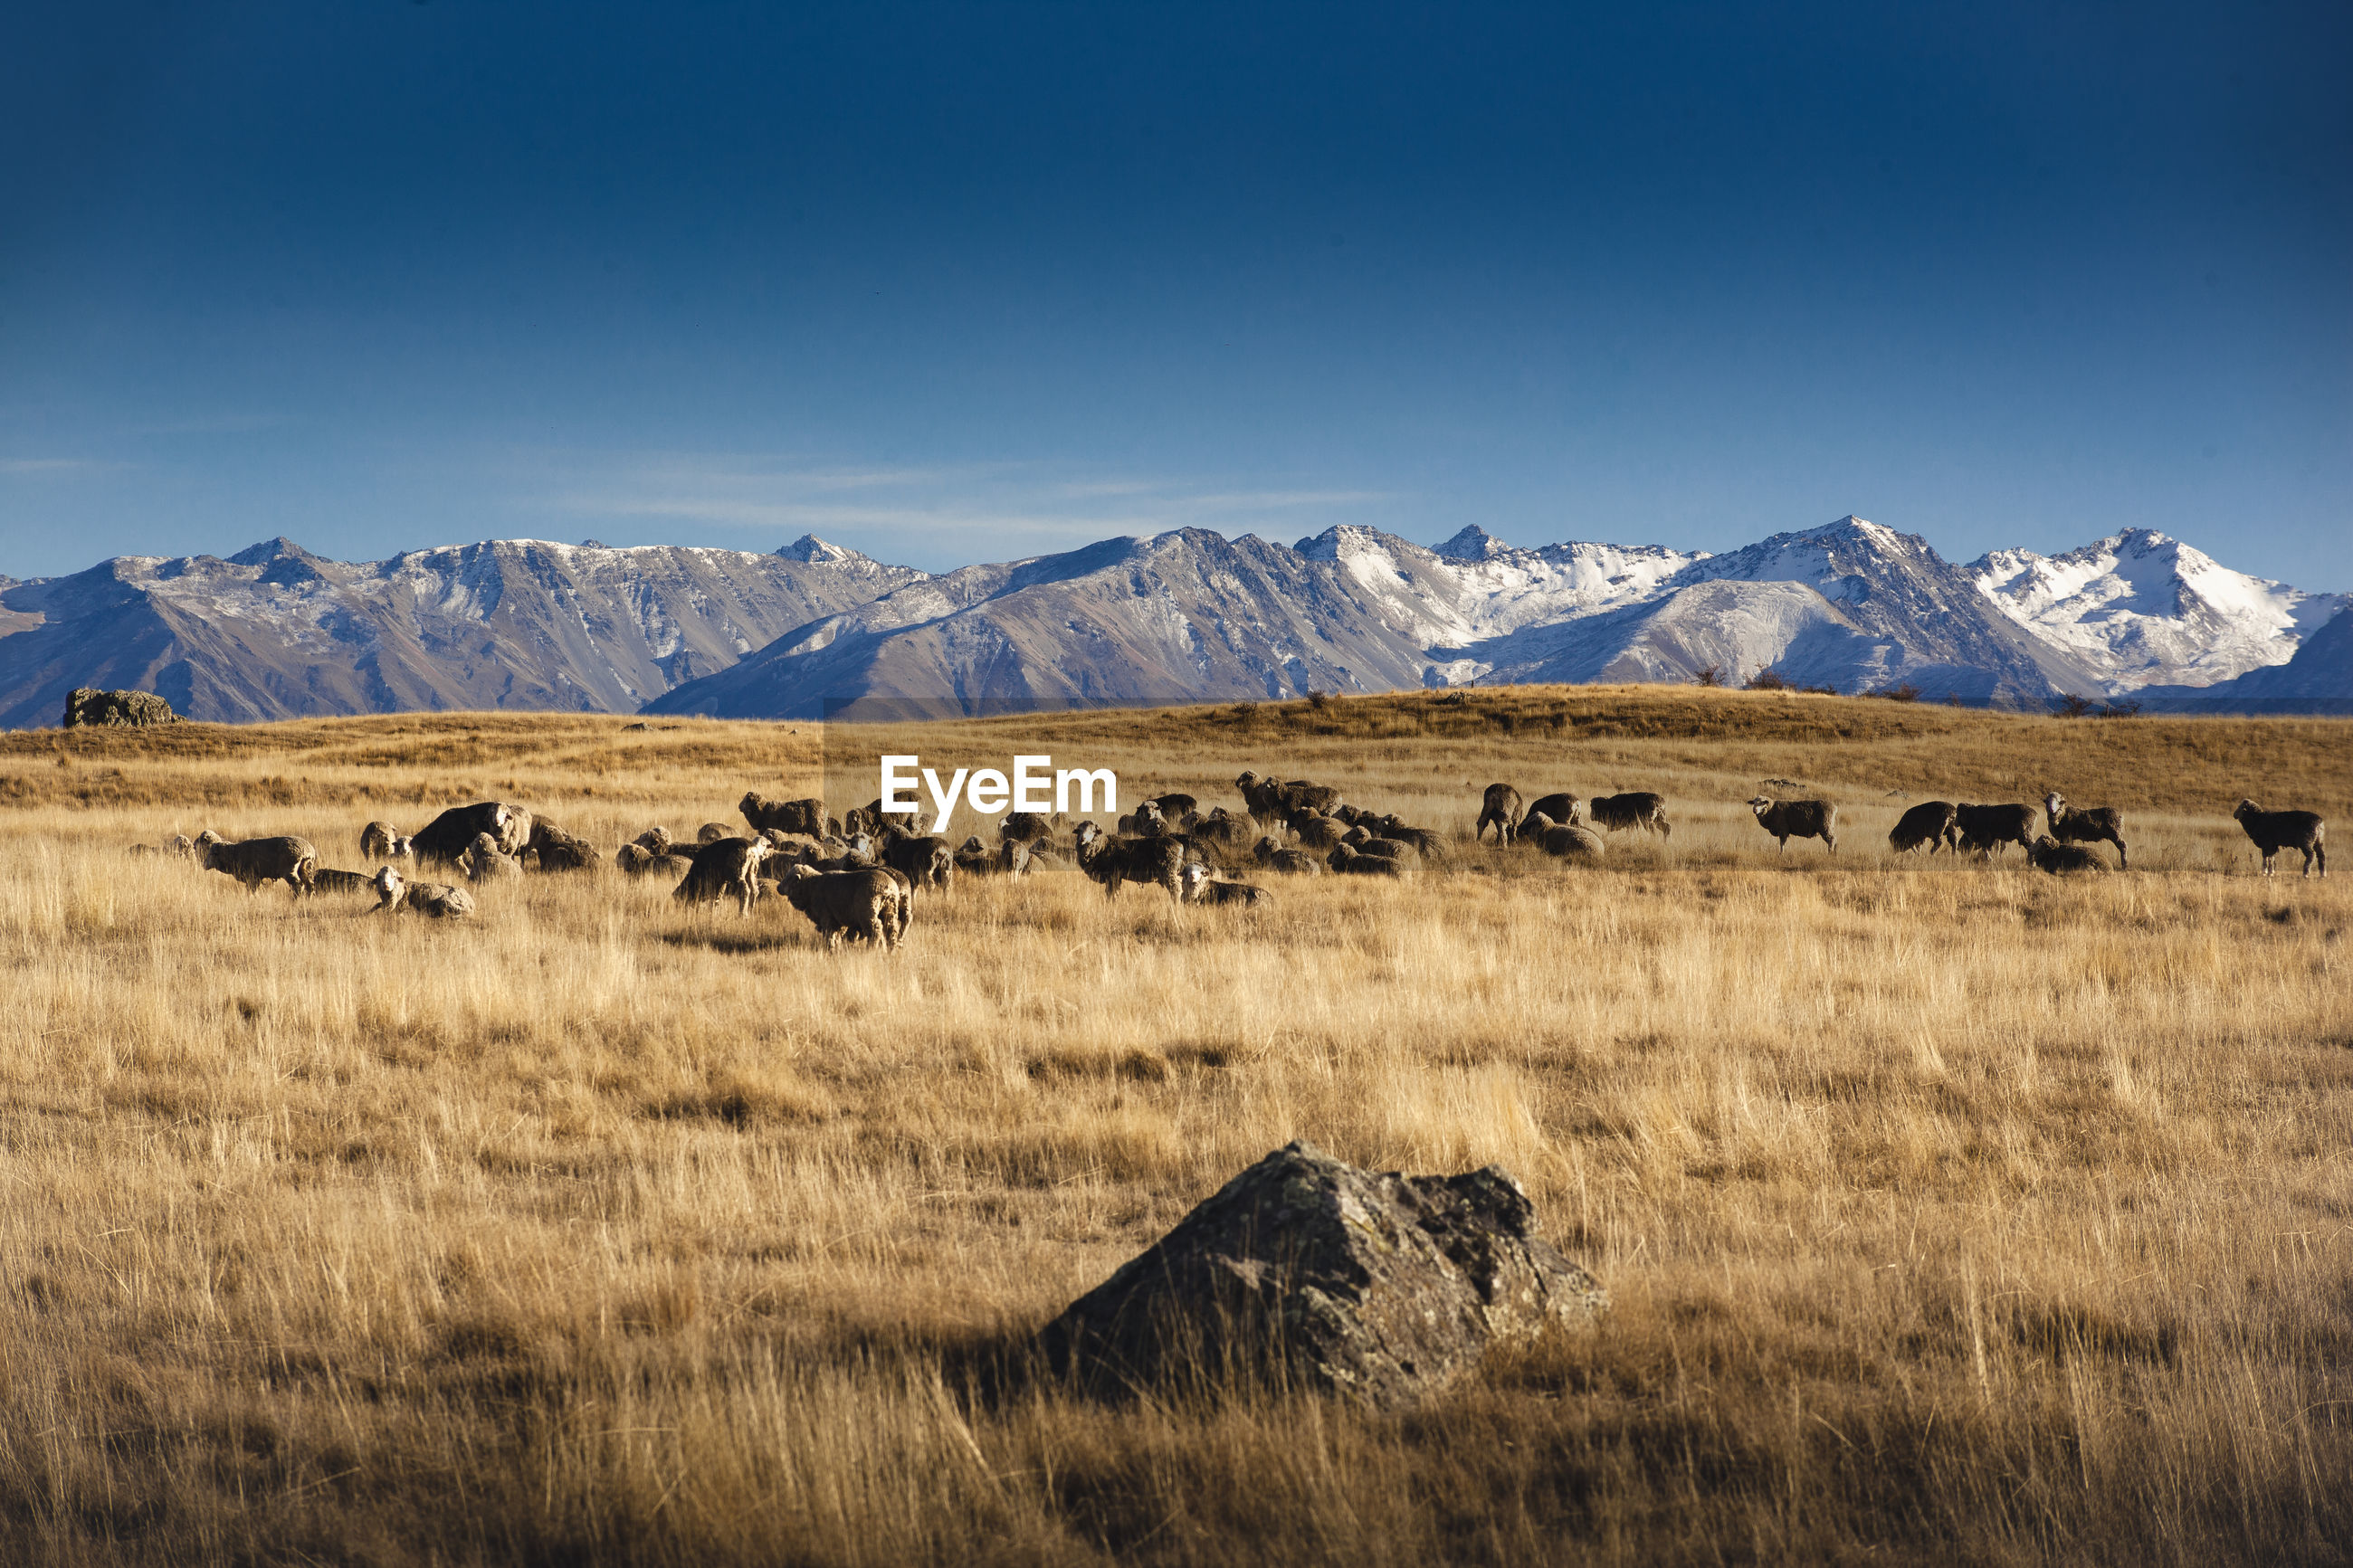 Mid distance view of sheep on grassy field against mountains